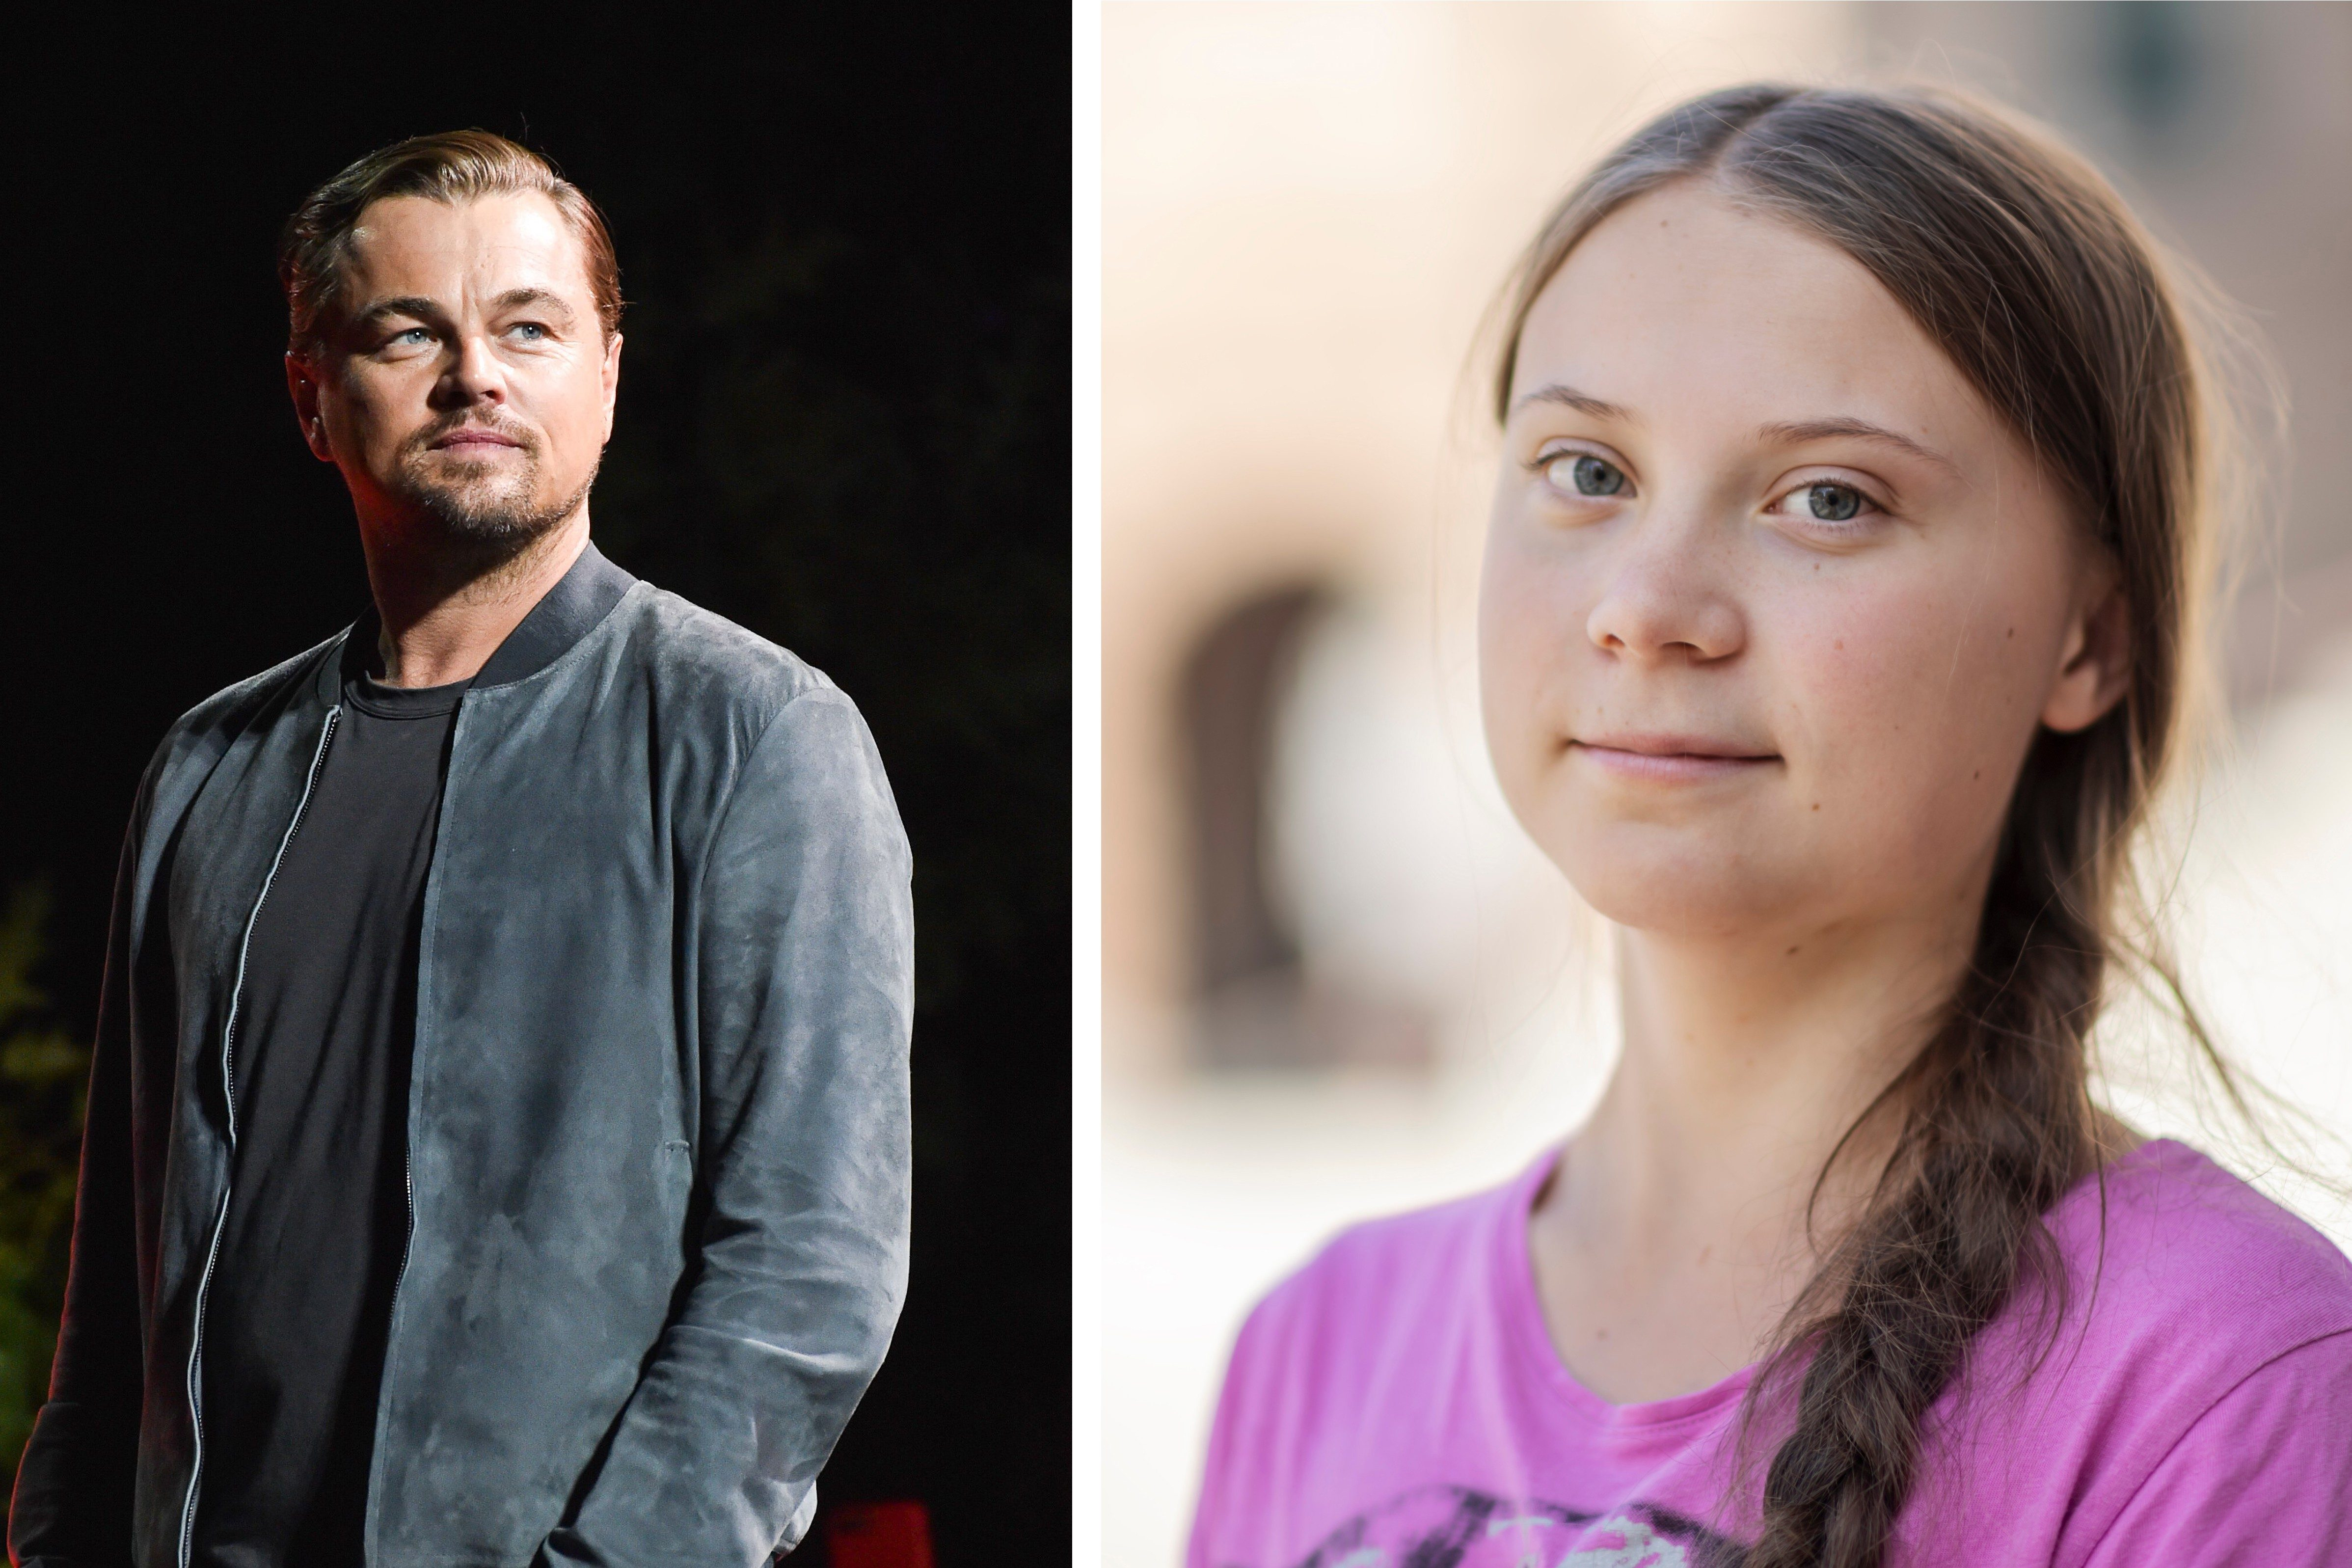 Mandatory Credit: Photo by IBL/Shutterstock (10352686f) Greta Thunberg, climate activist, made her final school strike day outside the Parliament in Stockholm, Sweden before going to the US and the UN Climate conference Greta Thunberg at the Stockholm Parliament, Sweden - 02 Aug 2019